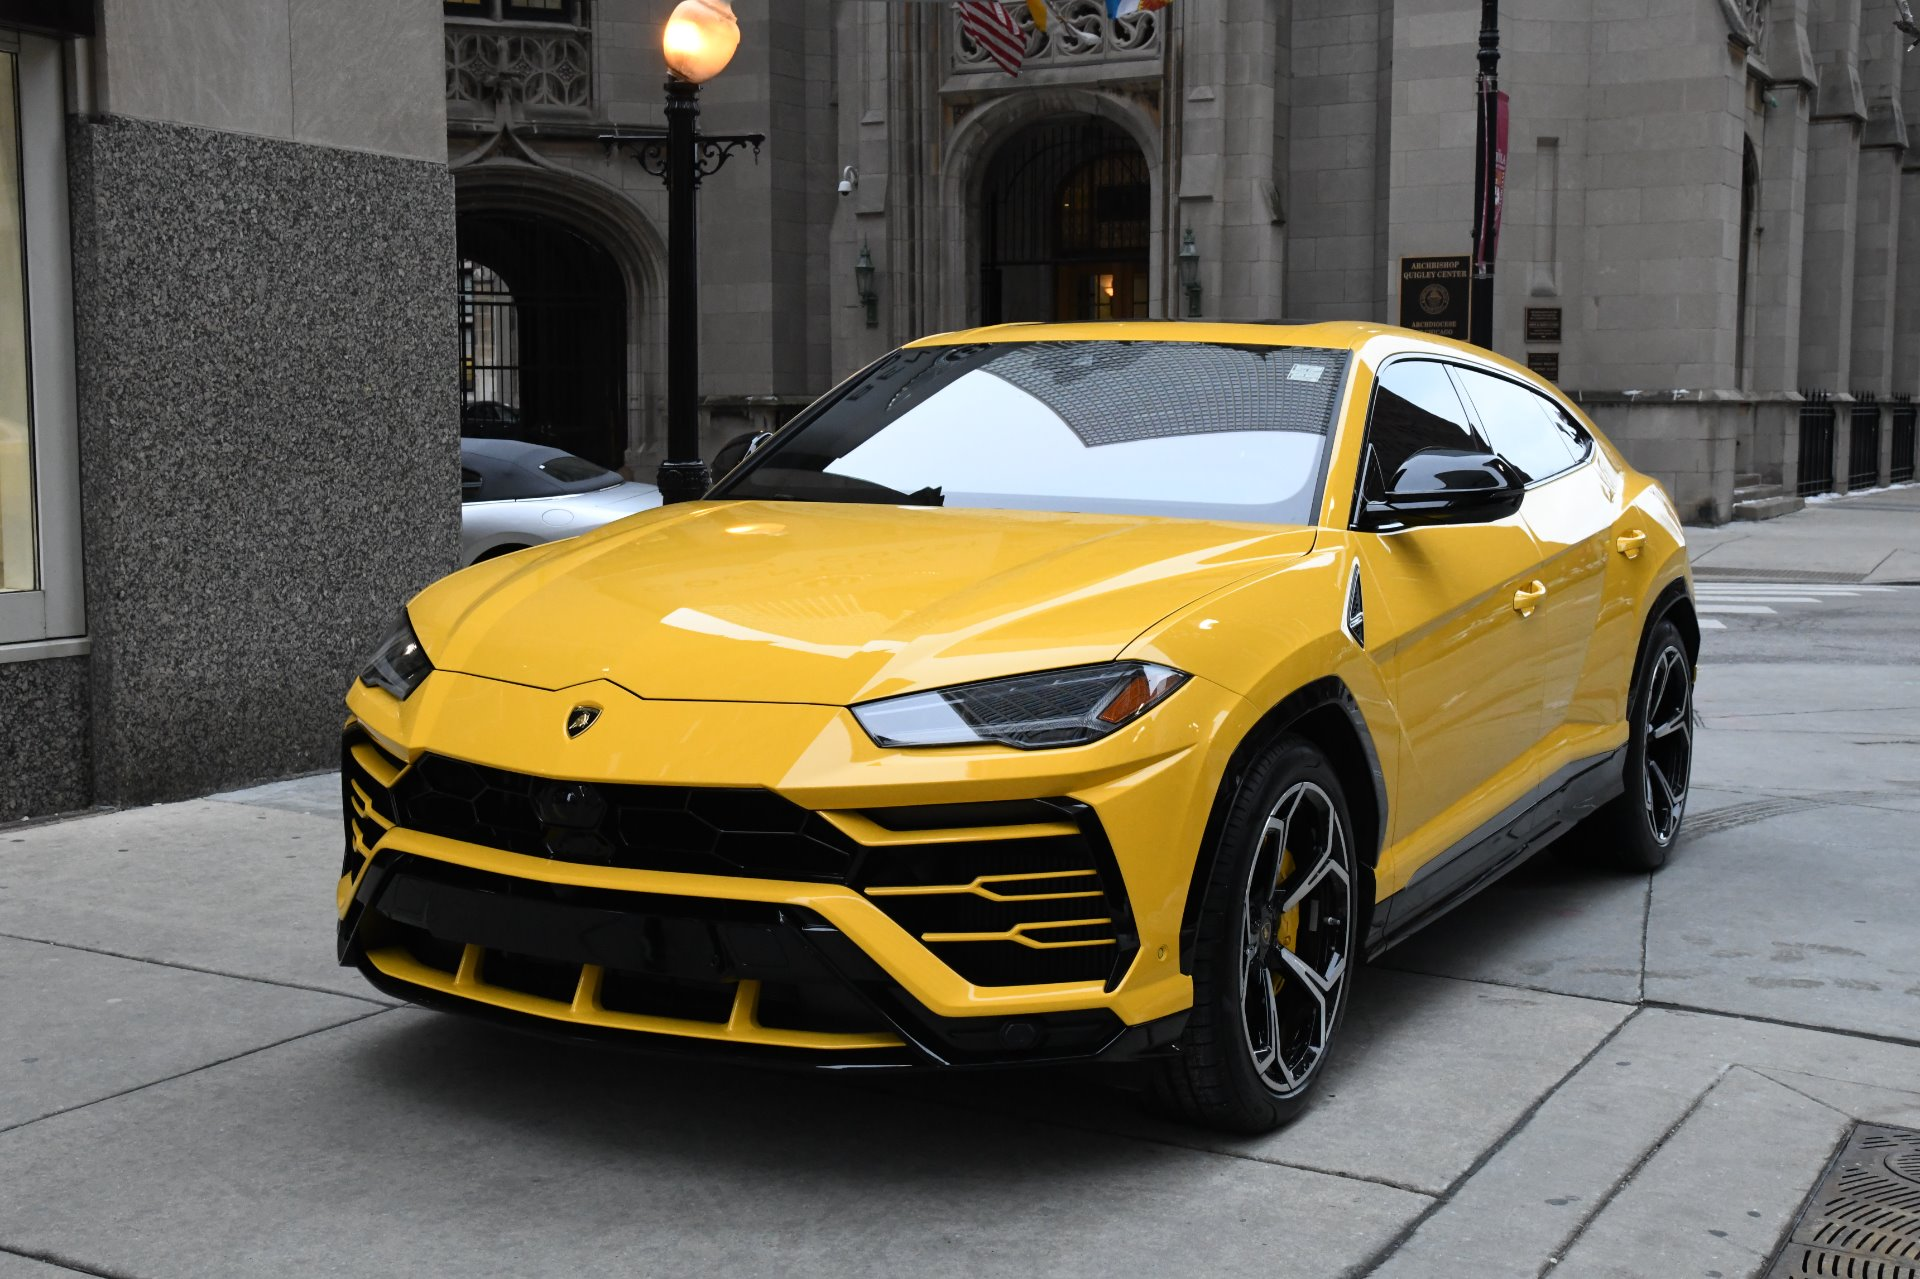 2019 Lamborghini Urus Stock  01068 for sale near Chicago